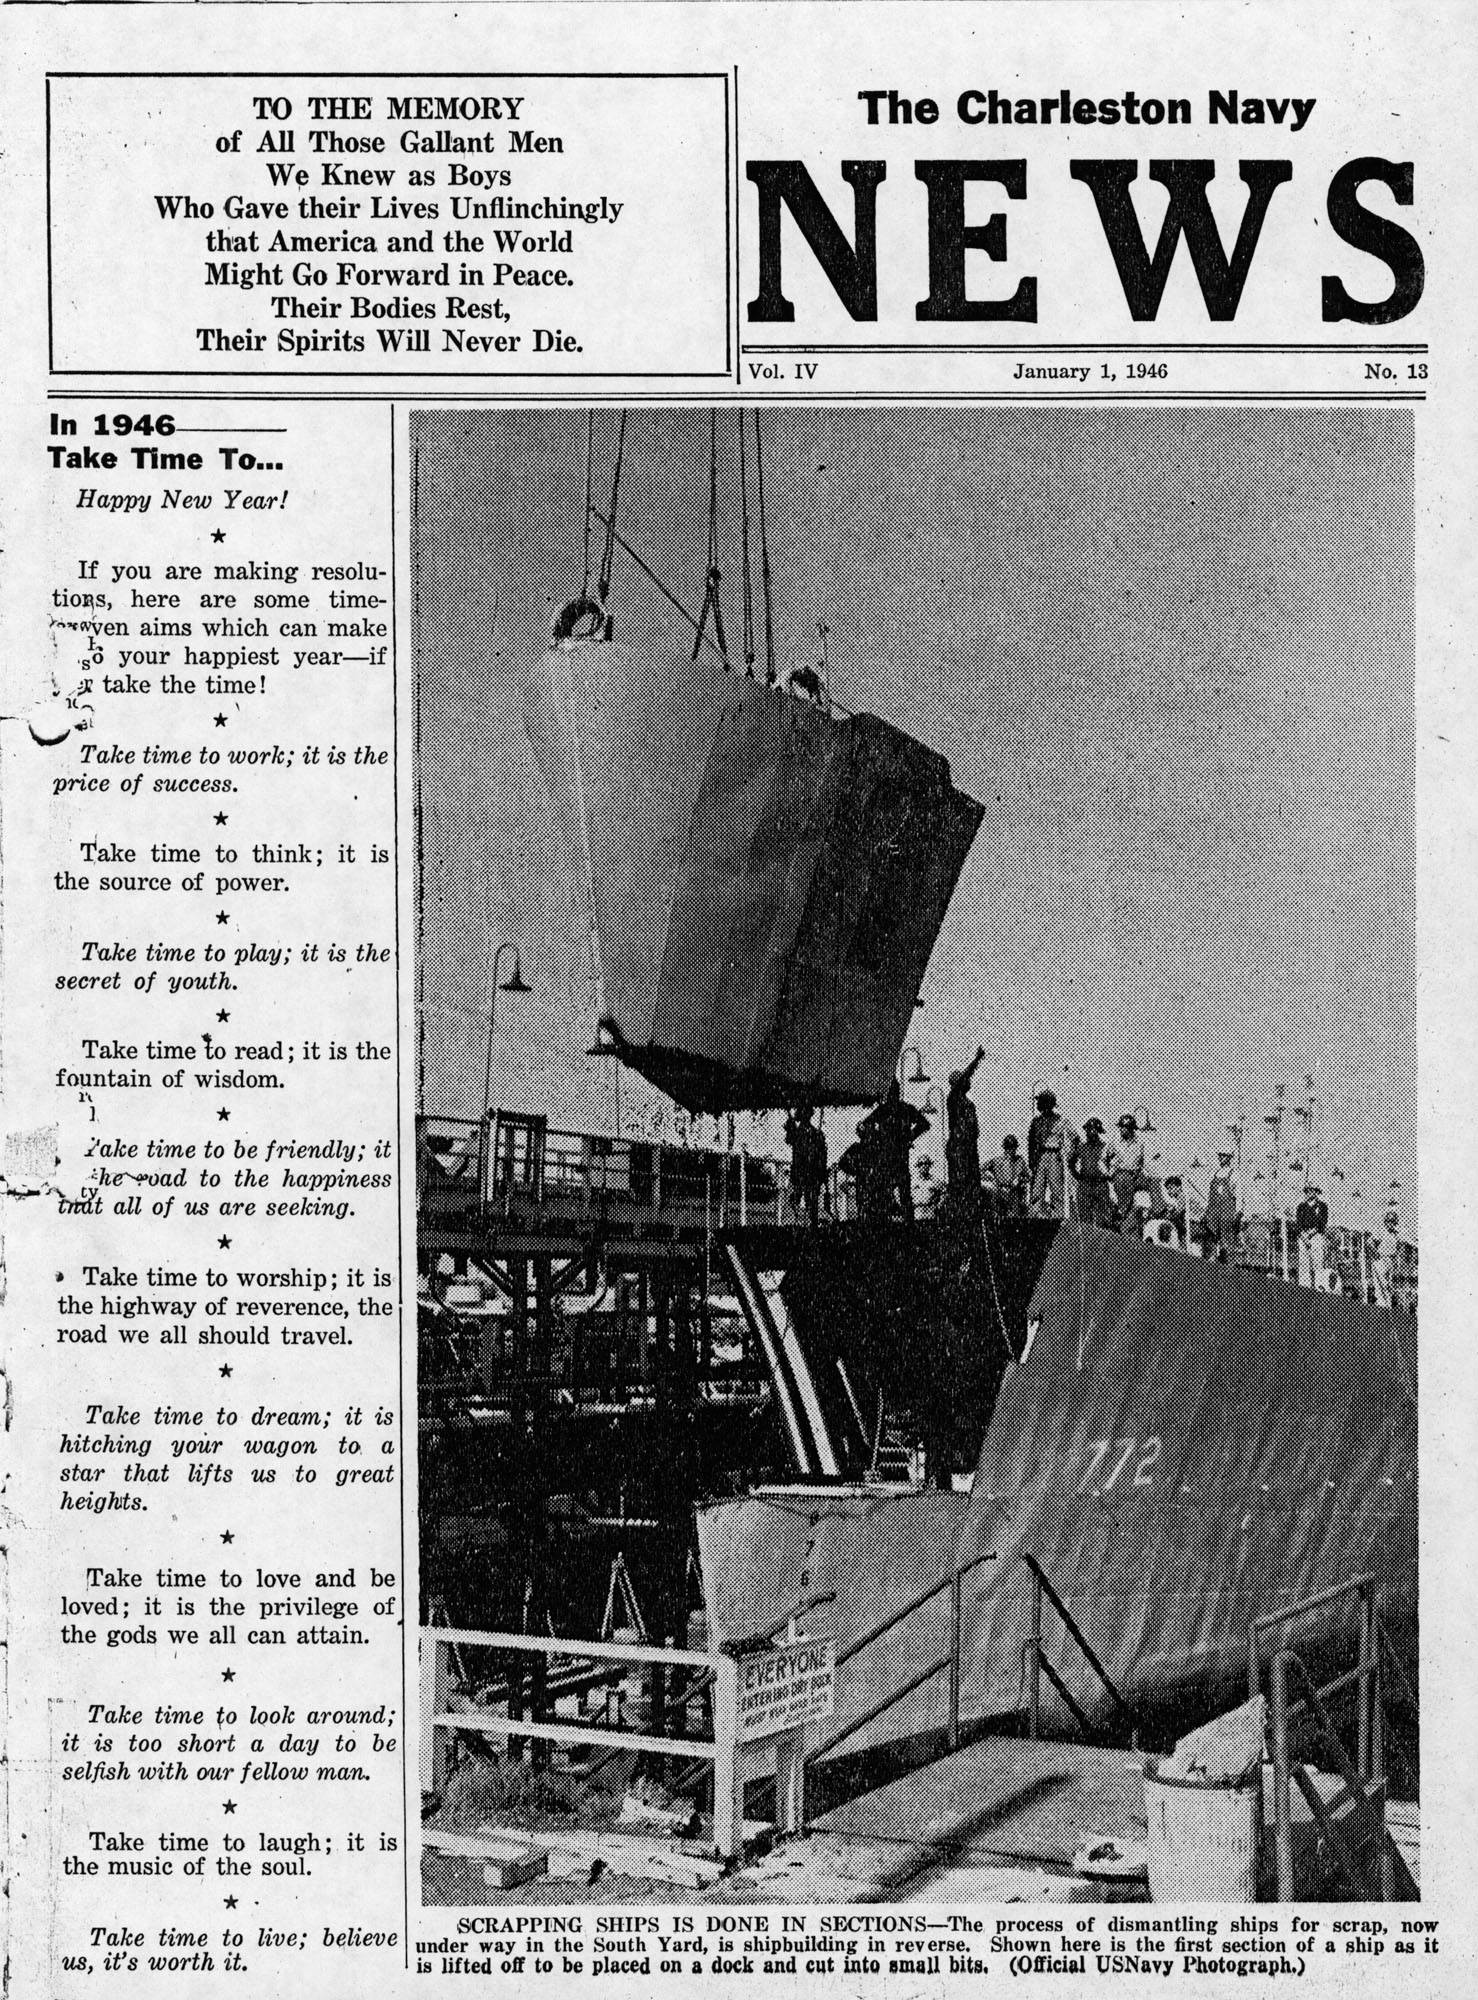 Patriots Point Shipyard Newsletters, Book 4